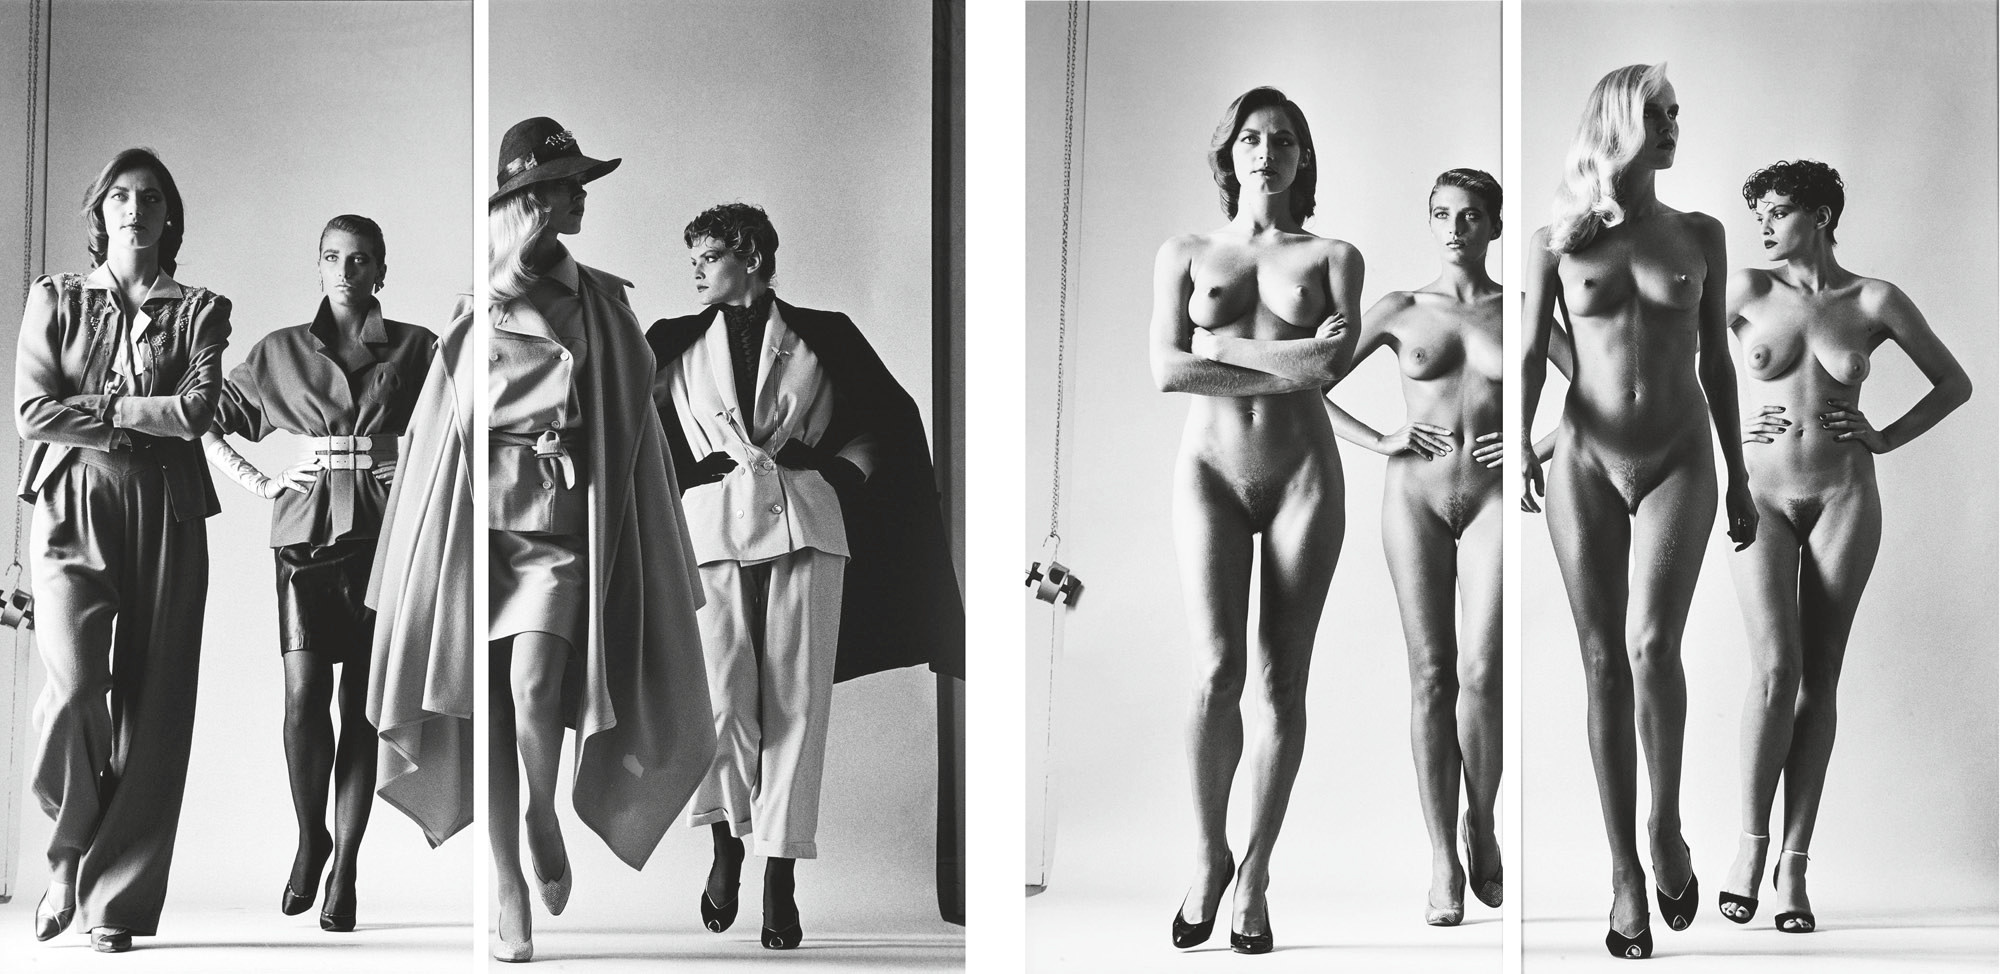 Sie Kommen, Paris (Naked and Dressed), Vogue Studios, 1981